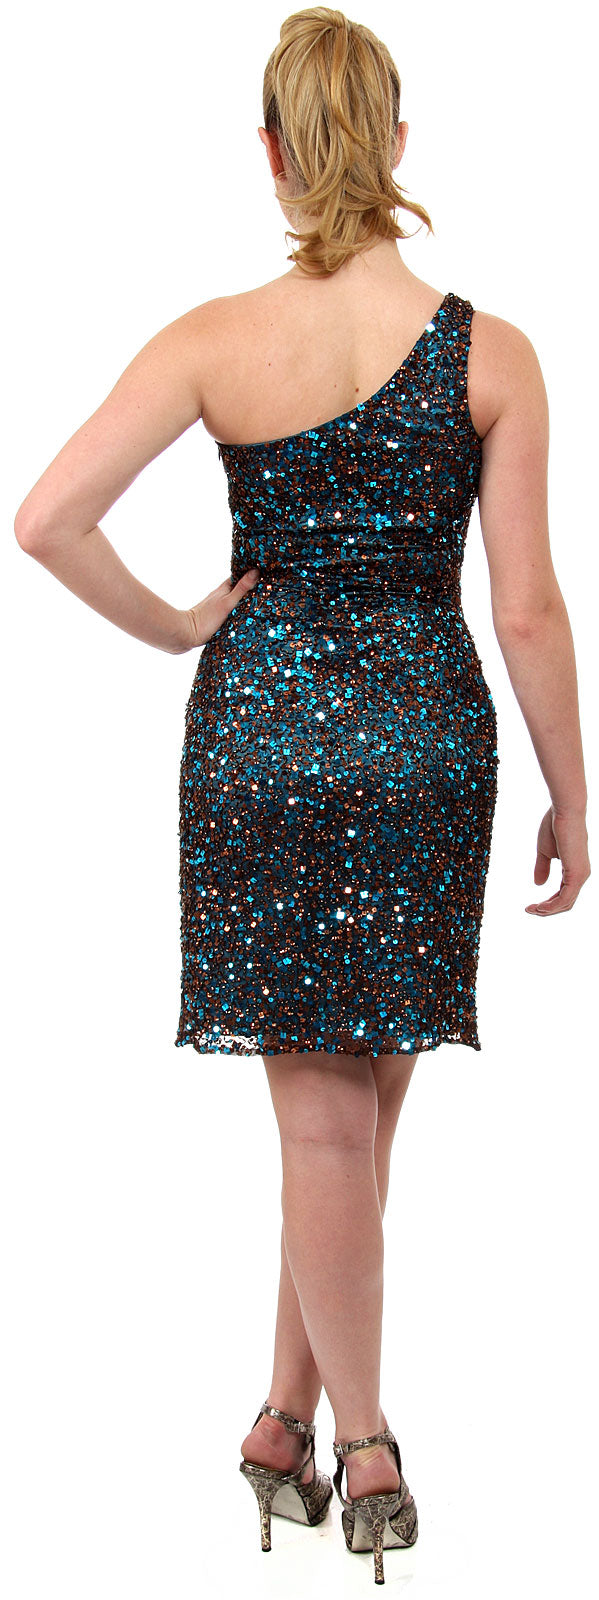 Image of Hand Beaded And Sequined One Shoulder Short Dress back in Brown/Turquoise